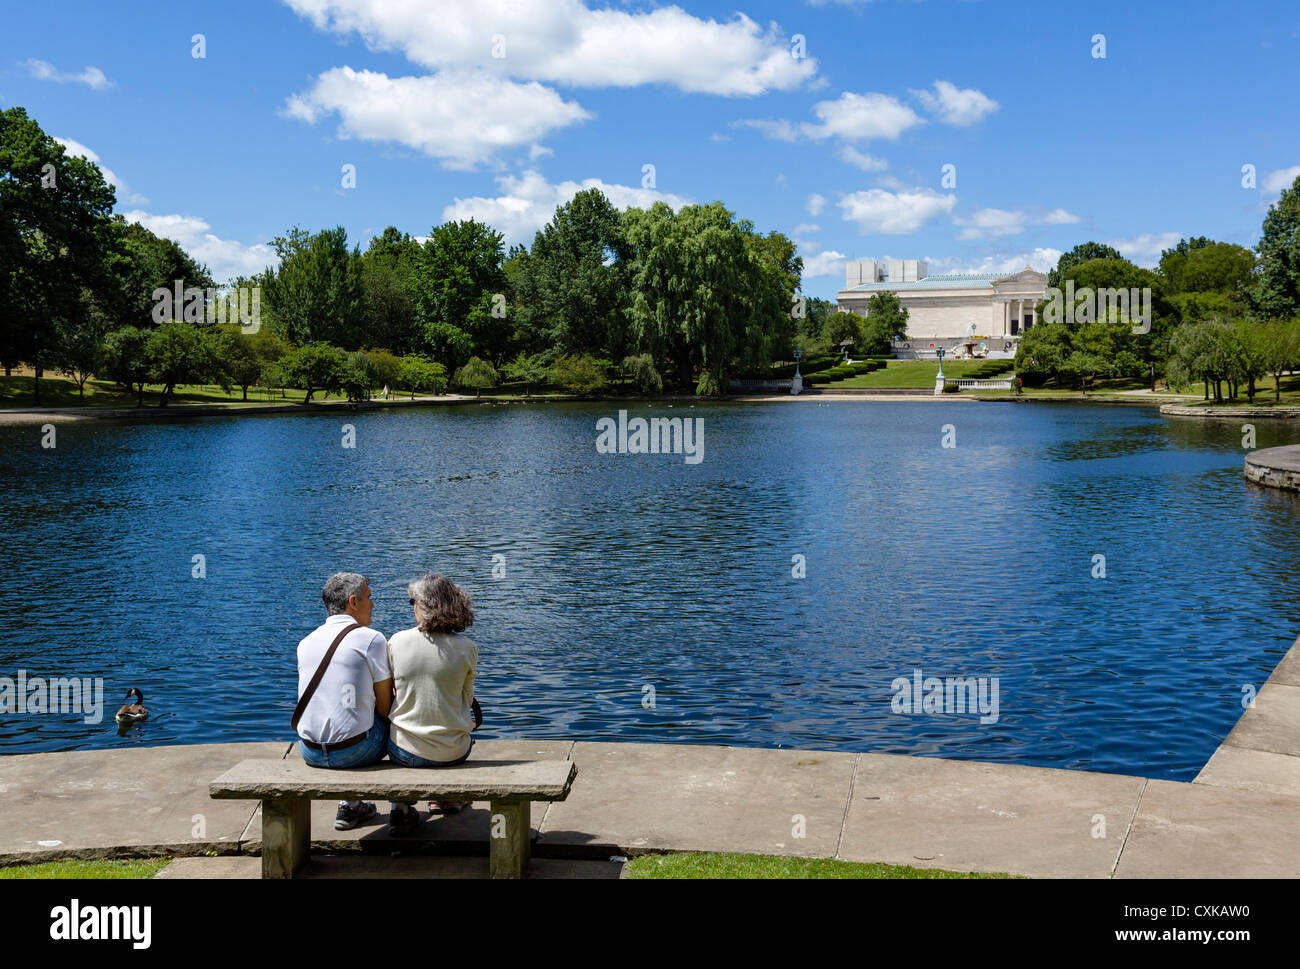 Couple sitting on a bench by Wade Lagoon Cleveland Museum of Art behind, University Circle district, Ohio, USA - Stock Image